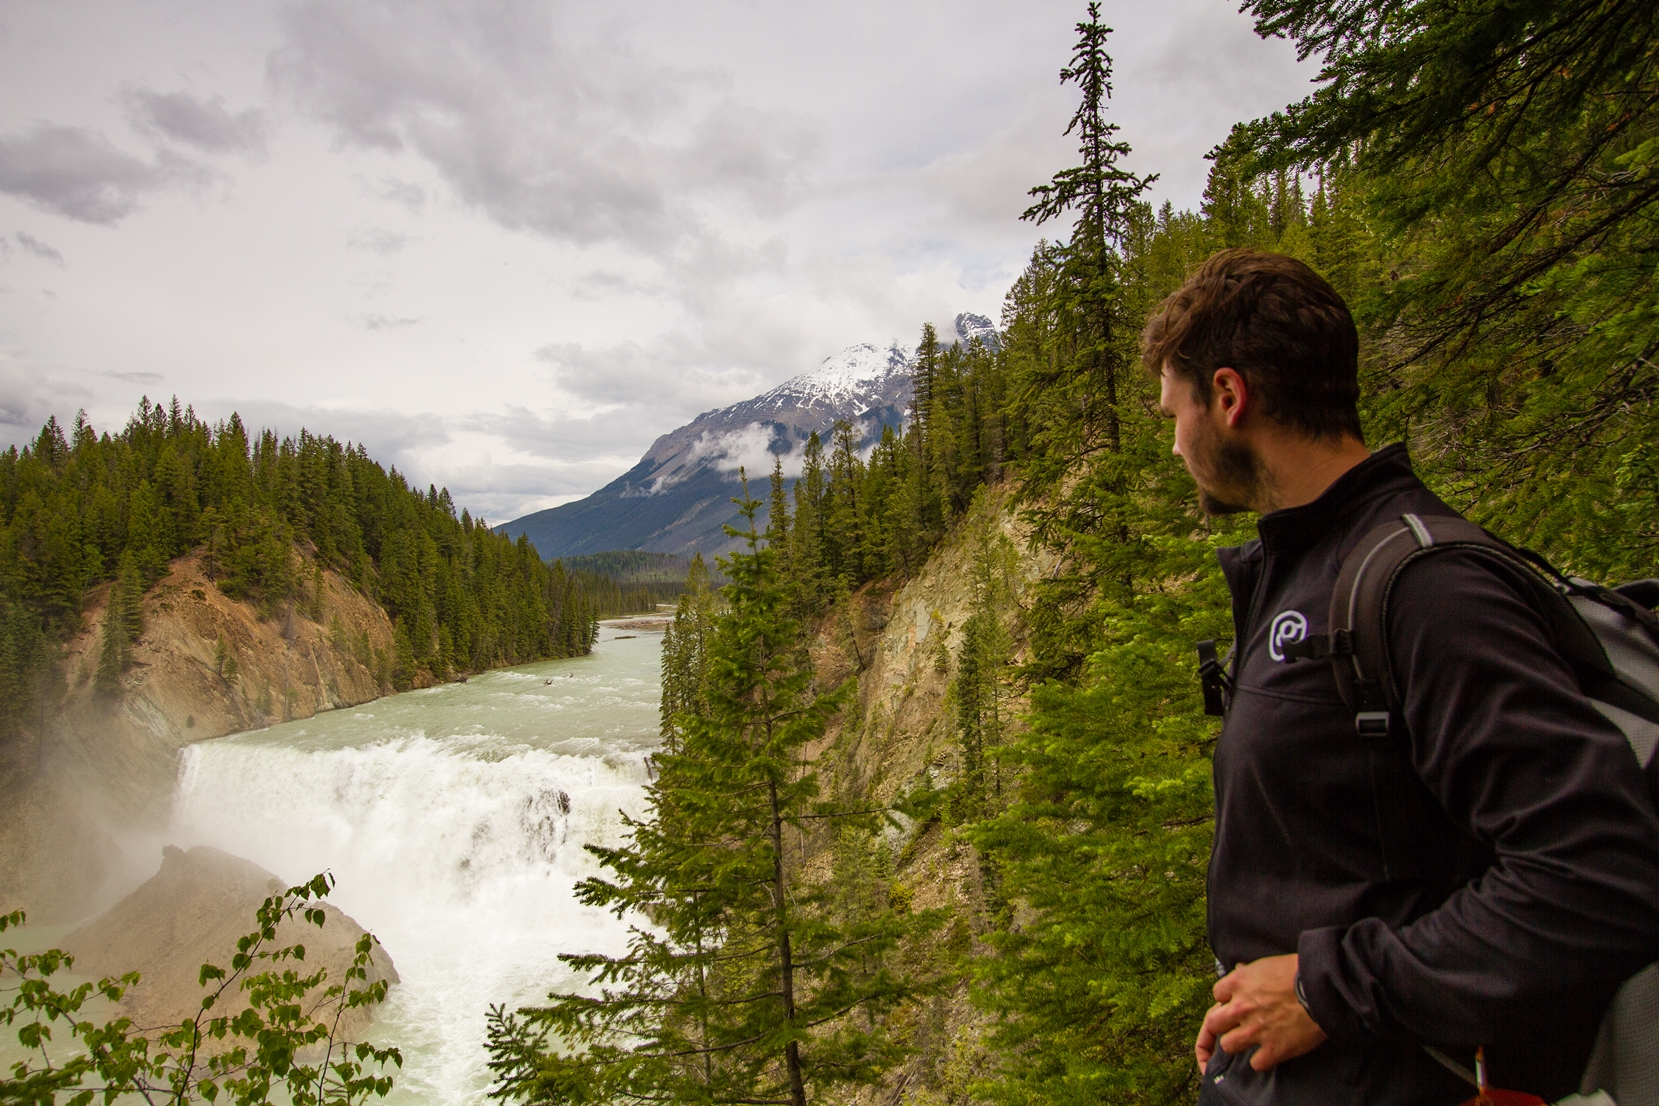 30m (98 ft) high and 150m (490 ft) wide, Wapta Falls is the largest waterfall of the powerful Kicking Horse River.